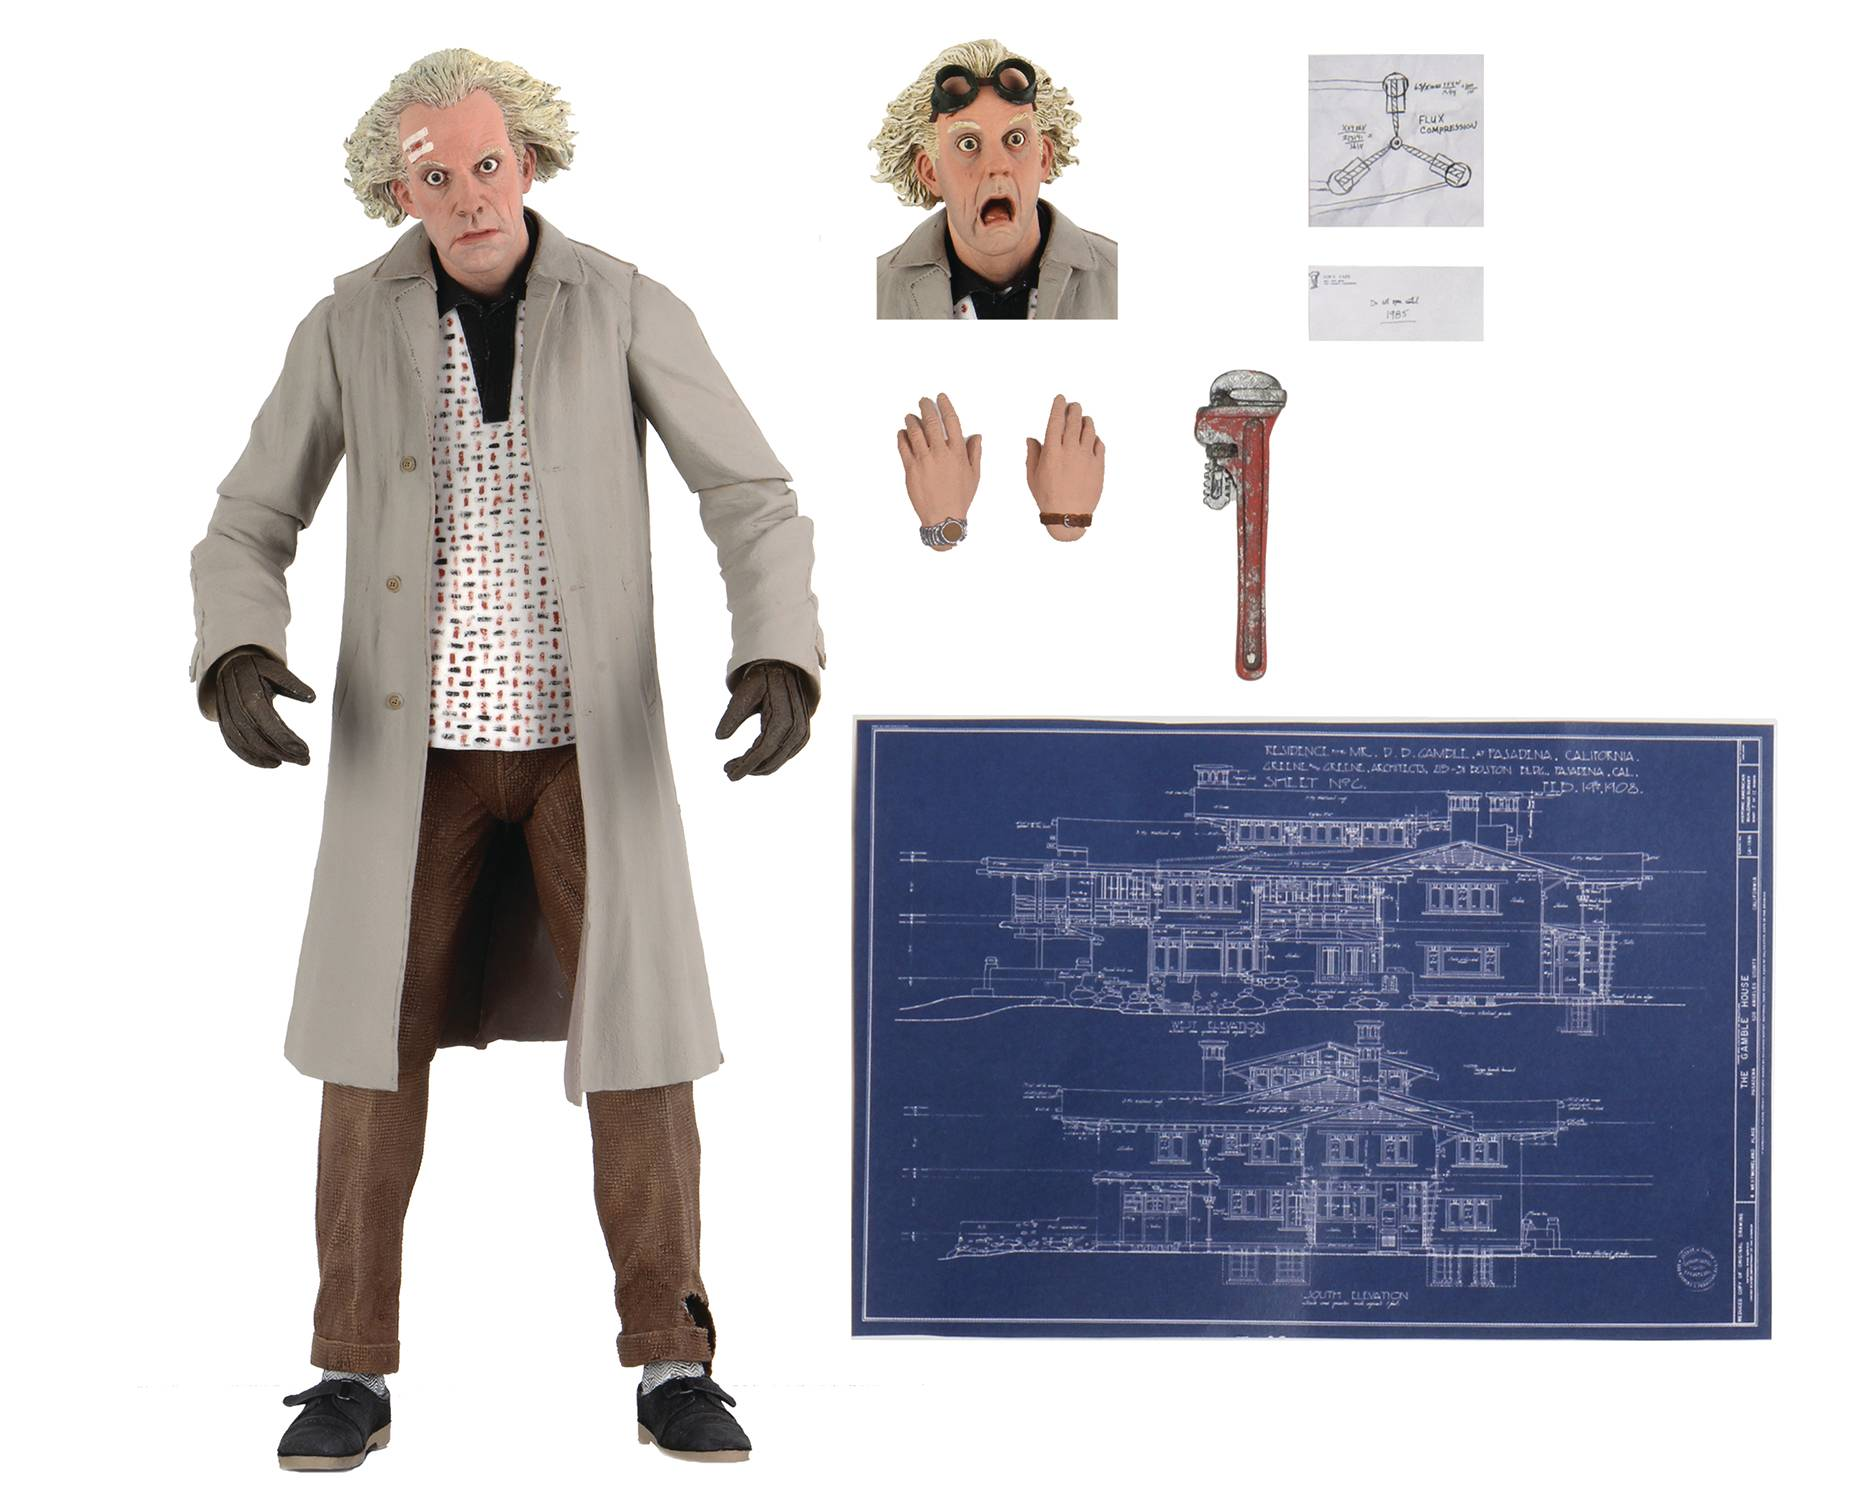 ULTIMATE DOC BROWN BACK TO THE FUTURE - NECA 7 INCH ACTION FIGURE